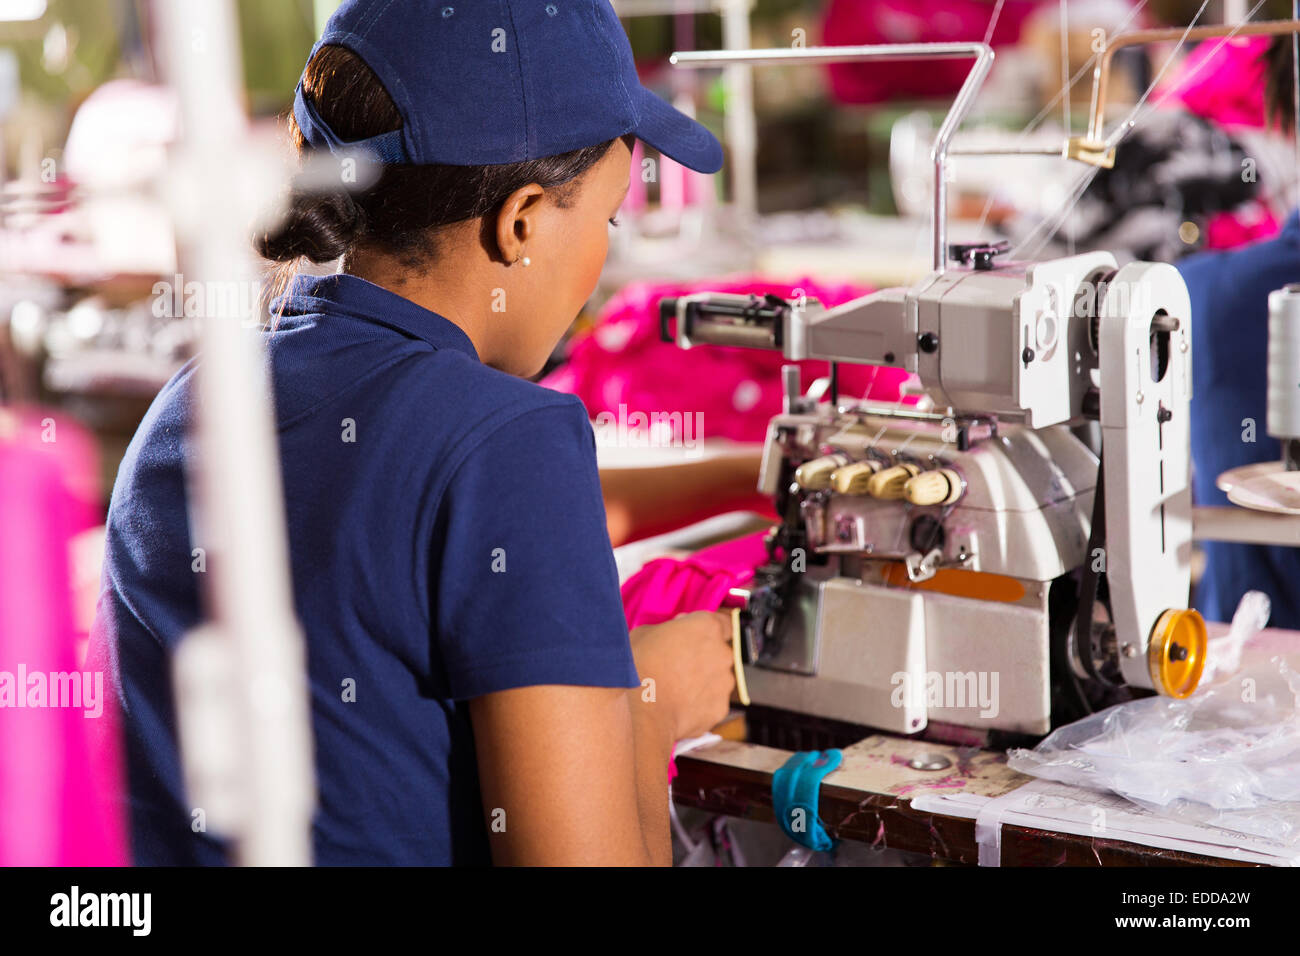 rear view of textile worker sewing - Stock Image